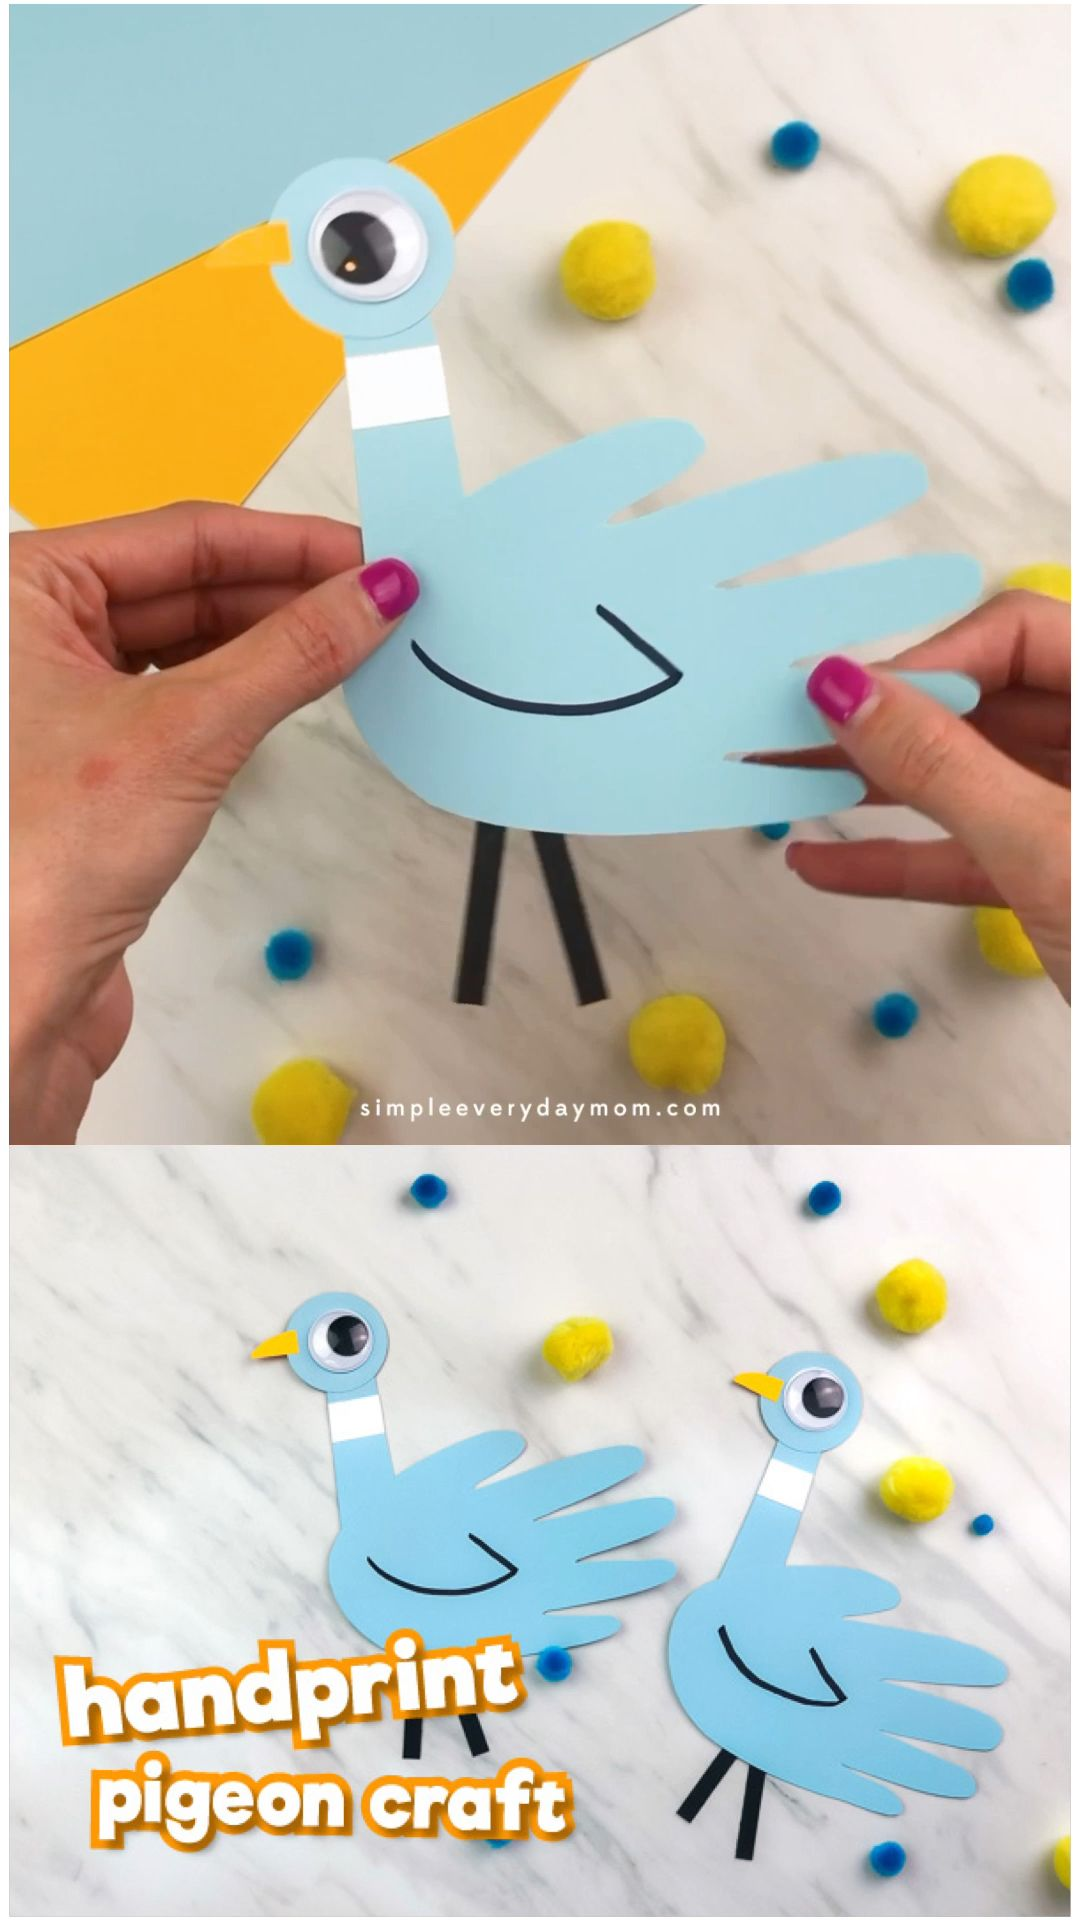 Handprint Pigeon Craft For Kids